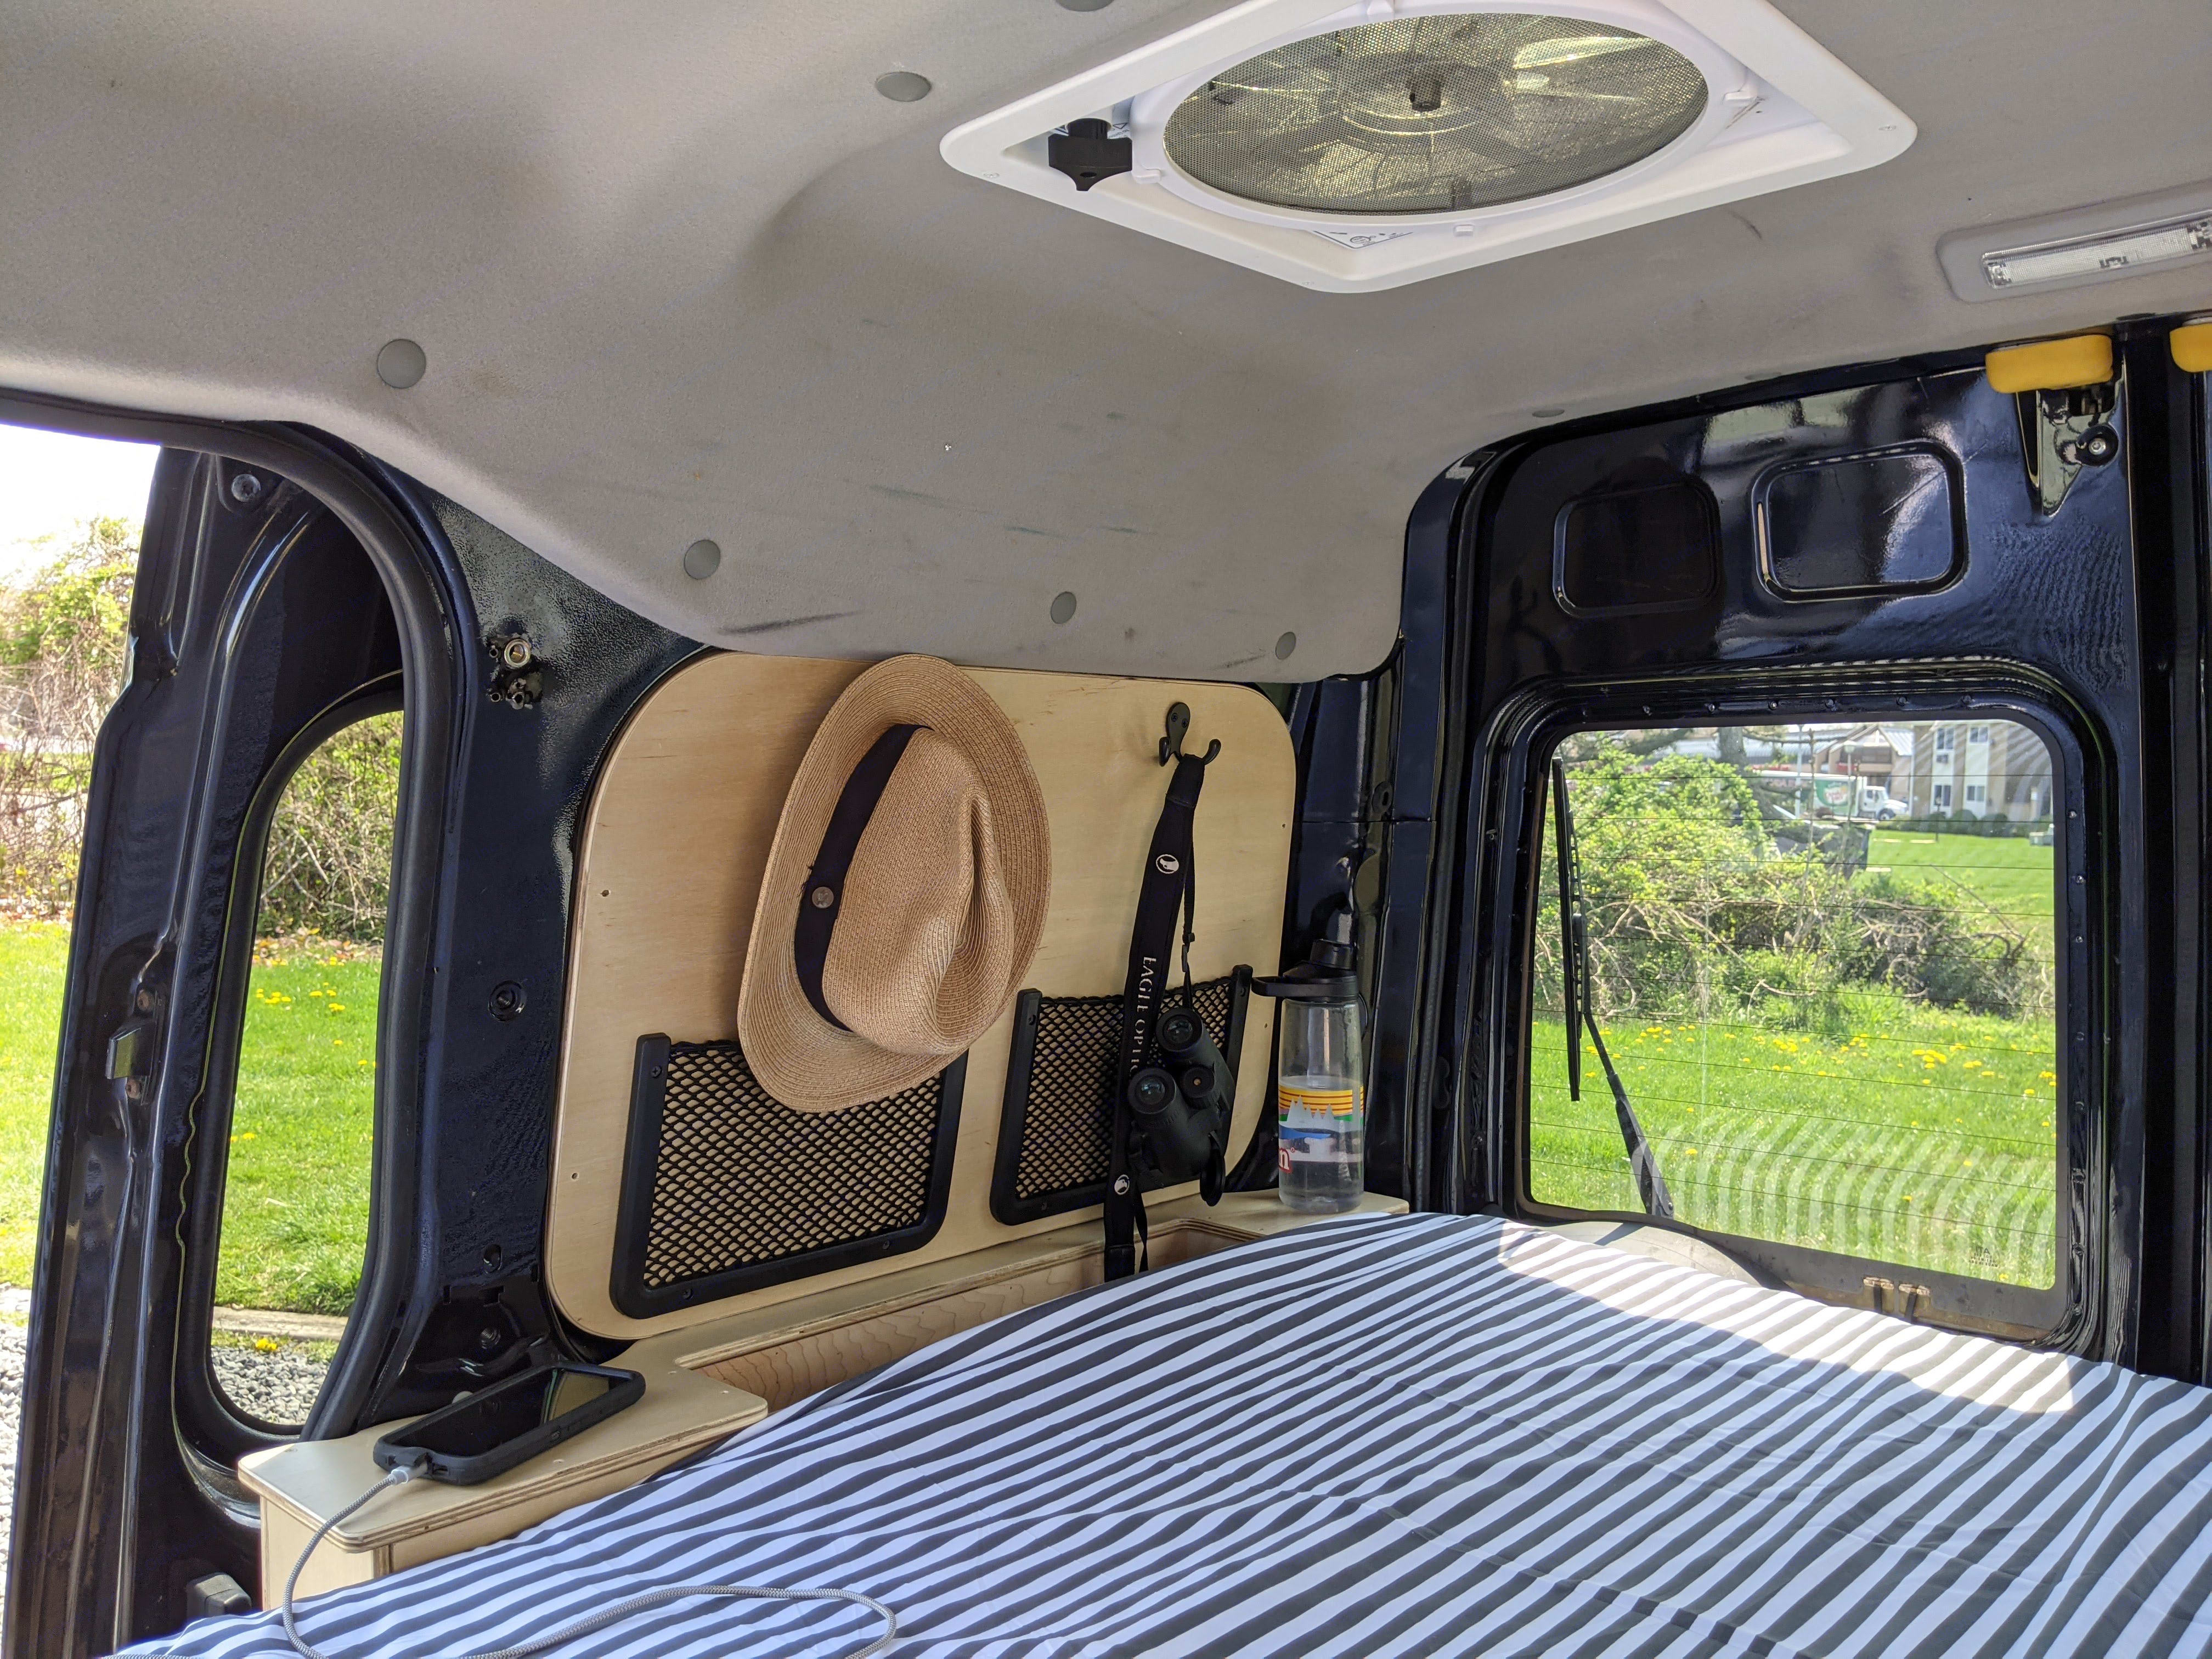 Ceiling ventilation fan, dual bedside storage cubbies and narrow queen sized bed. Ford Transit Connect 2012